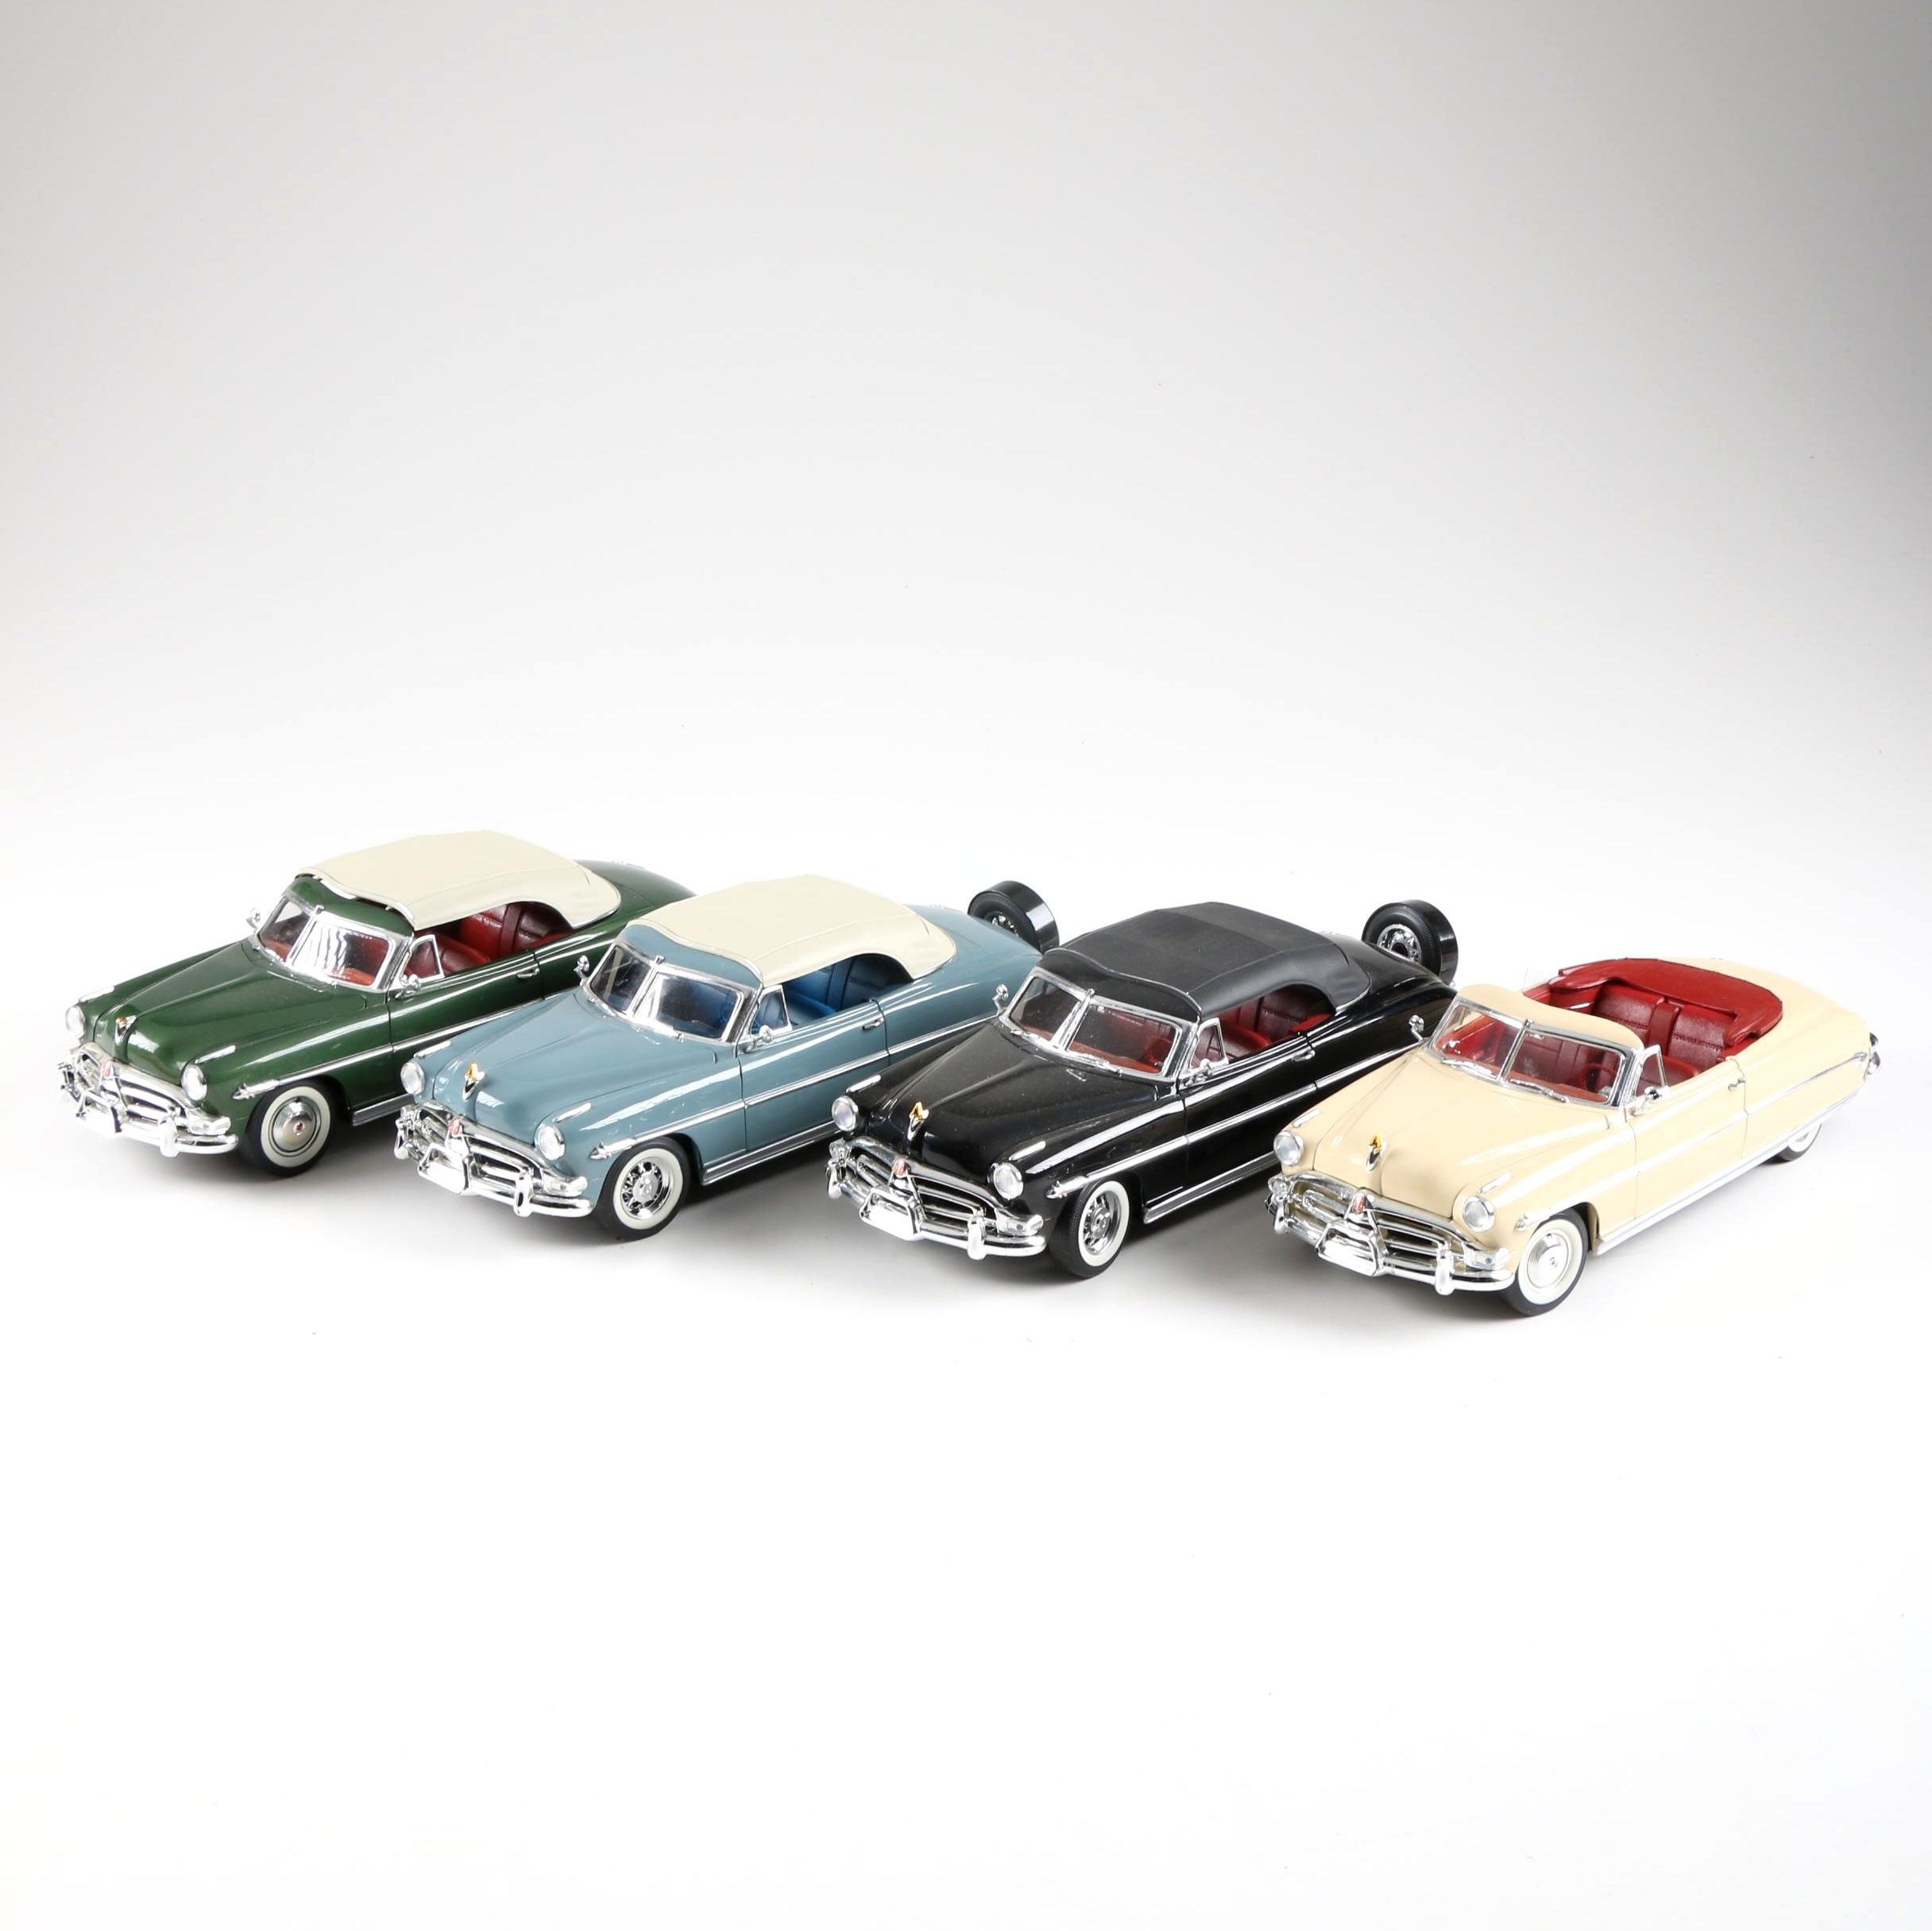 Collection of 1952 Hudson 1:16 Scale Die-Cast Cars